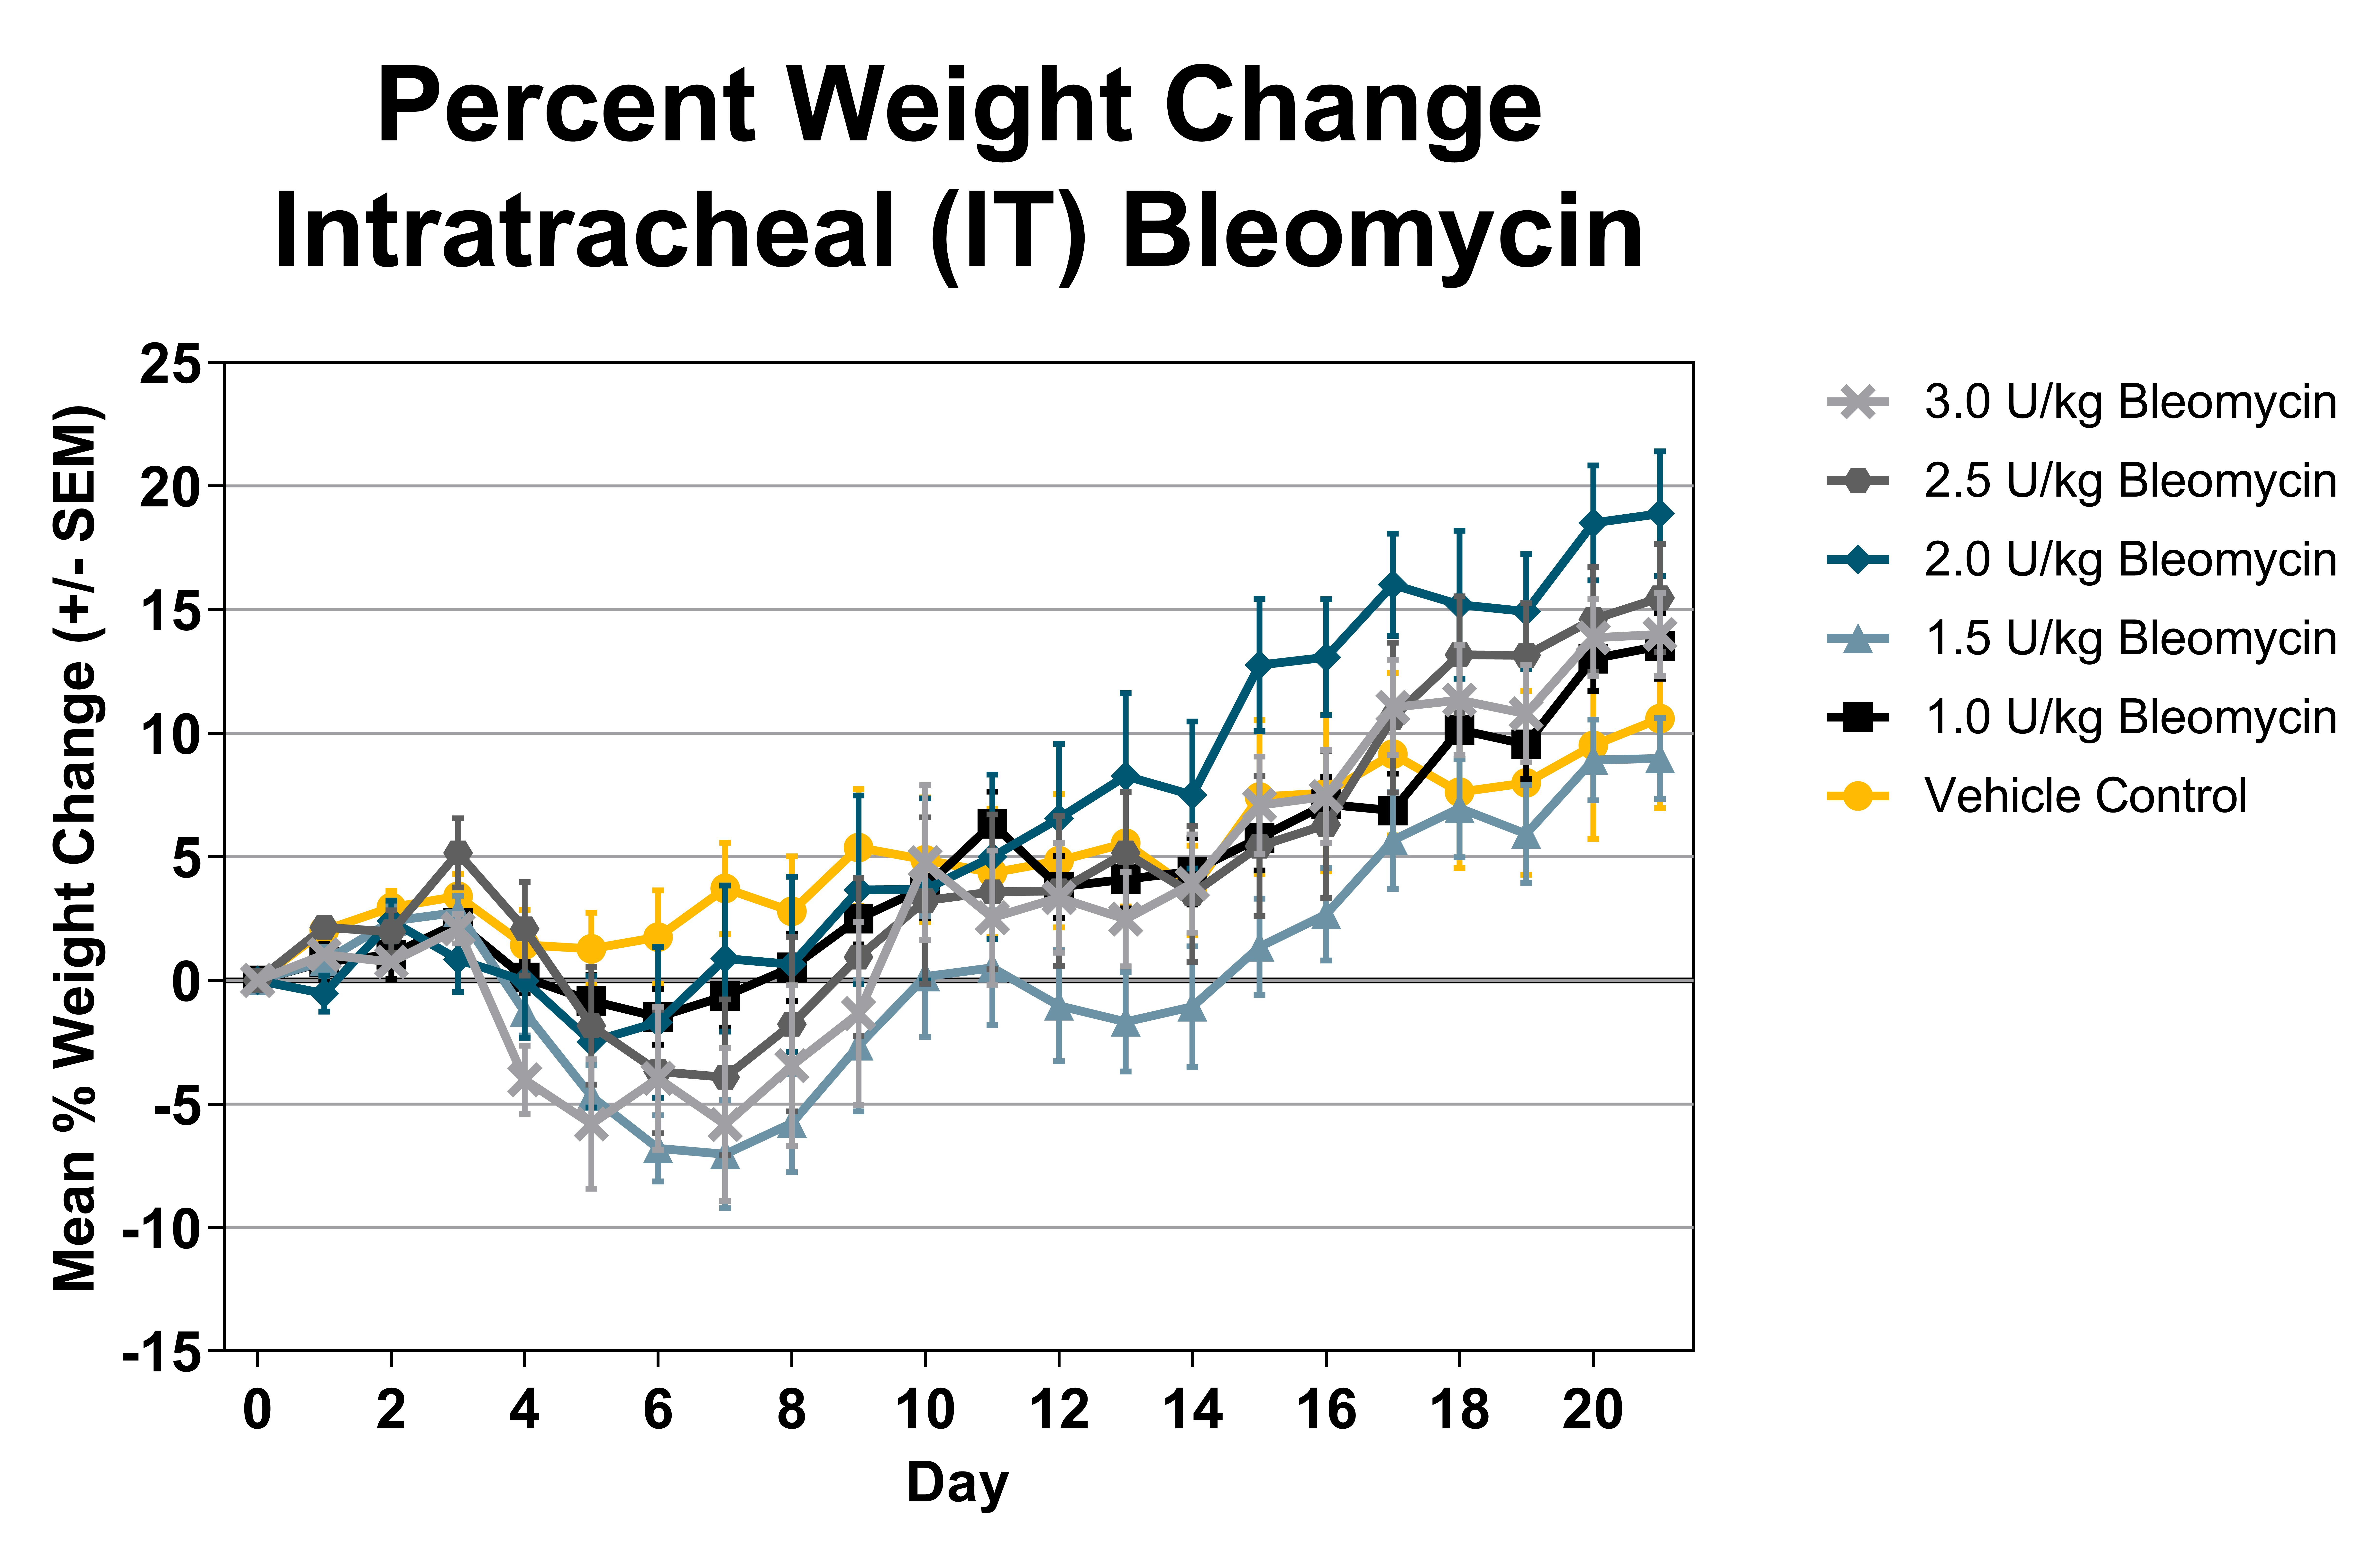 Effects of intratracheal Bleomycin dosing on body weight in mice.